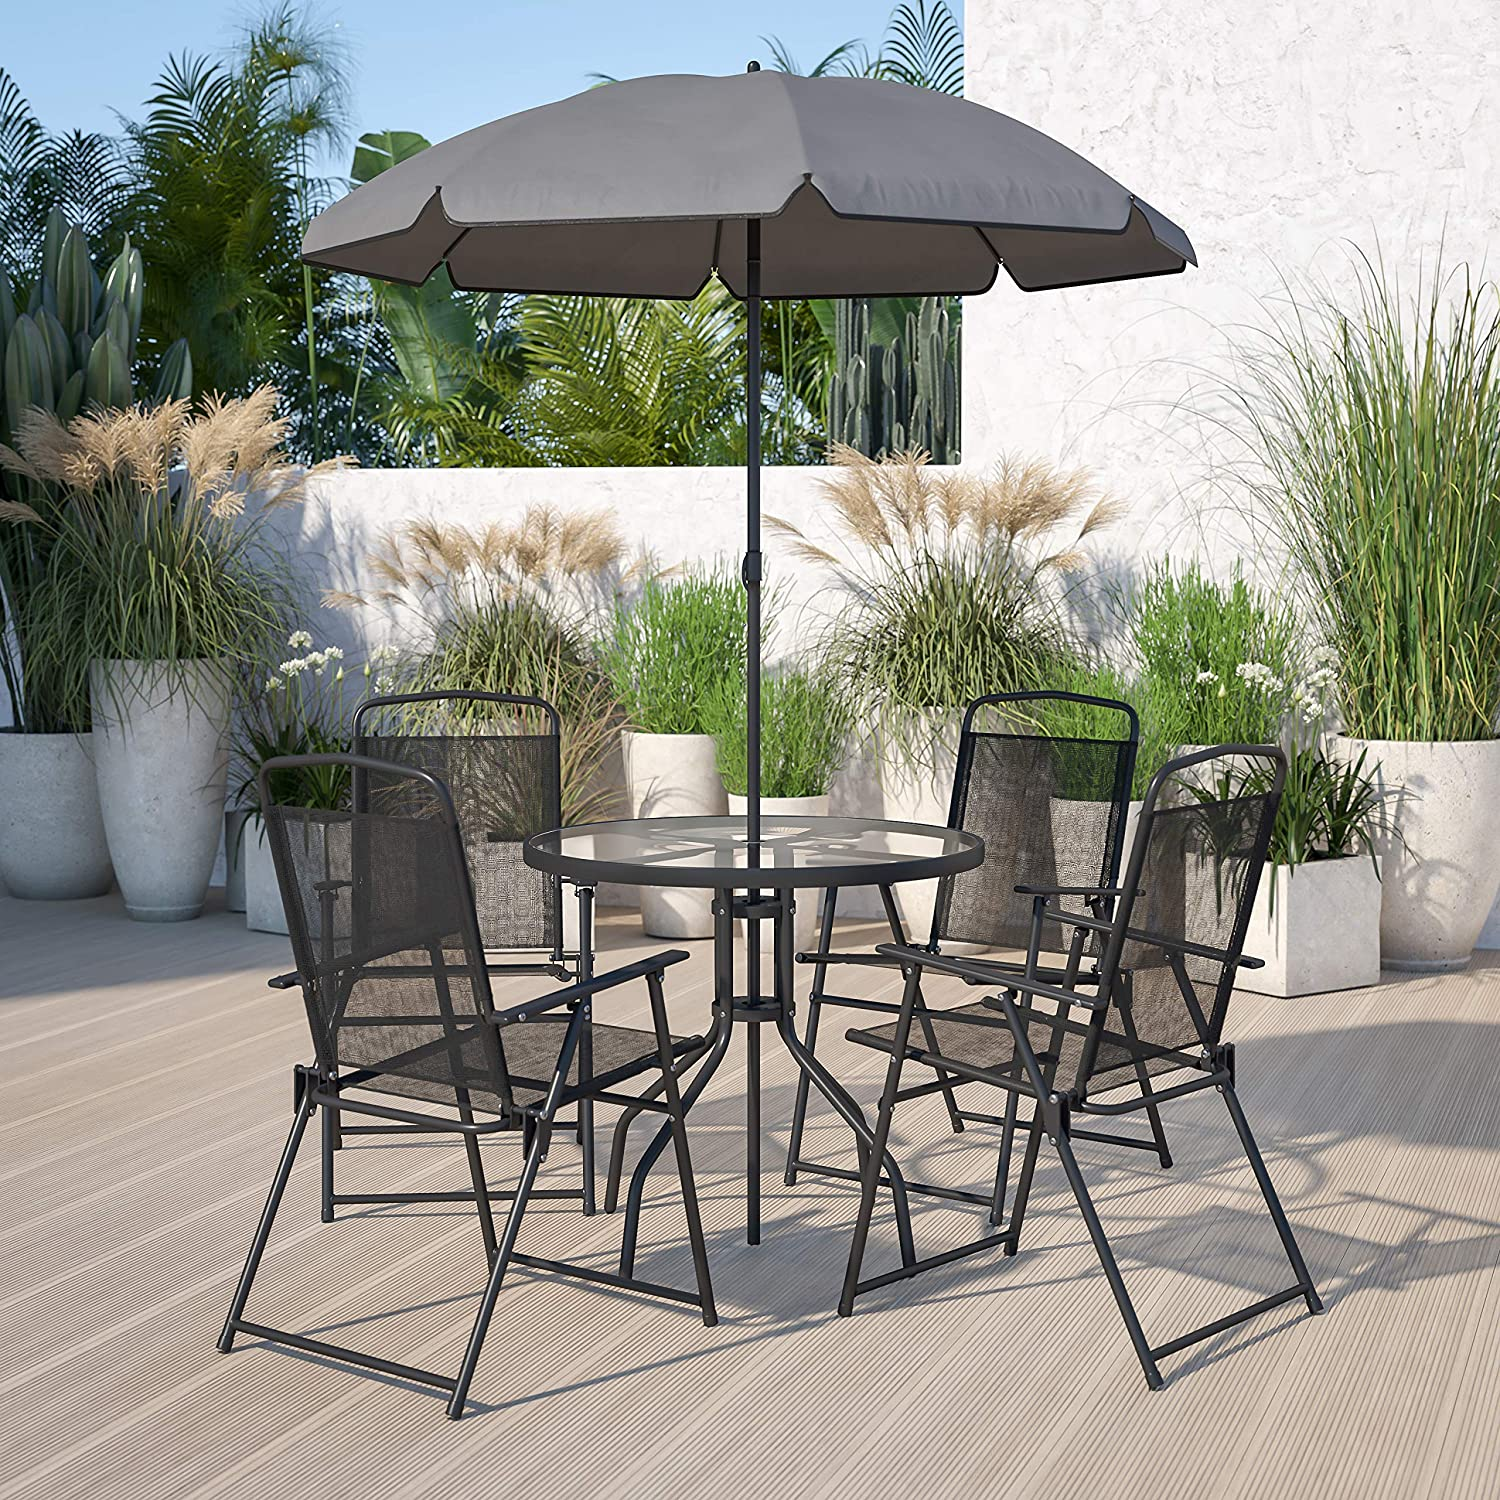 Flash Furniture Nantucket 6 Piece Black Patio Garden Set With Table Umbrella And 4 Folding Chairs Furniture Decor